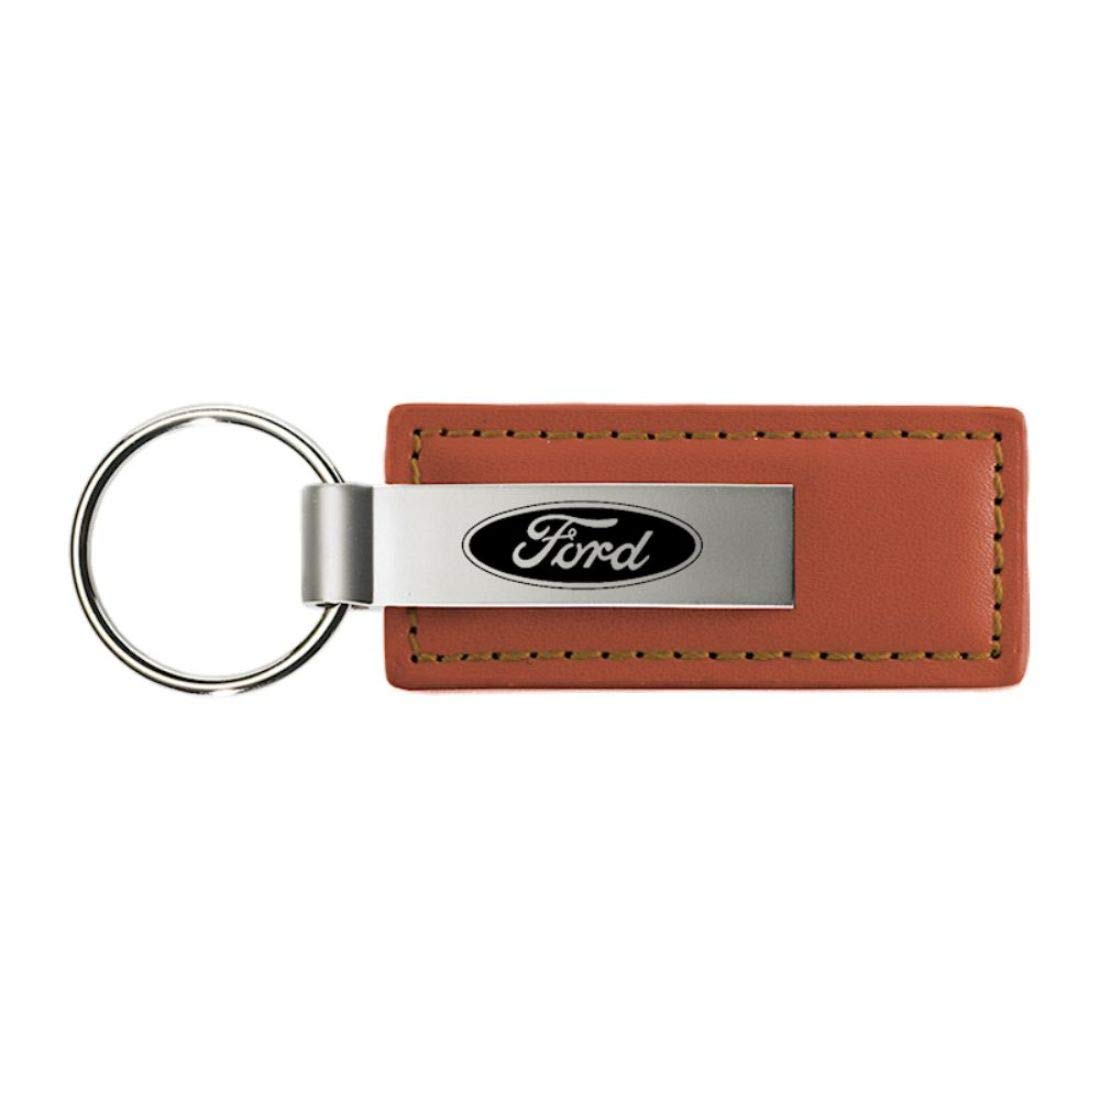 Ford Brown Leather Key Fob Authentic Logo Key Chain Key Ring Keychain Lanyard